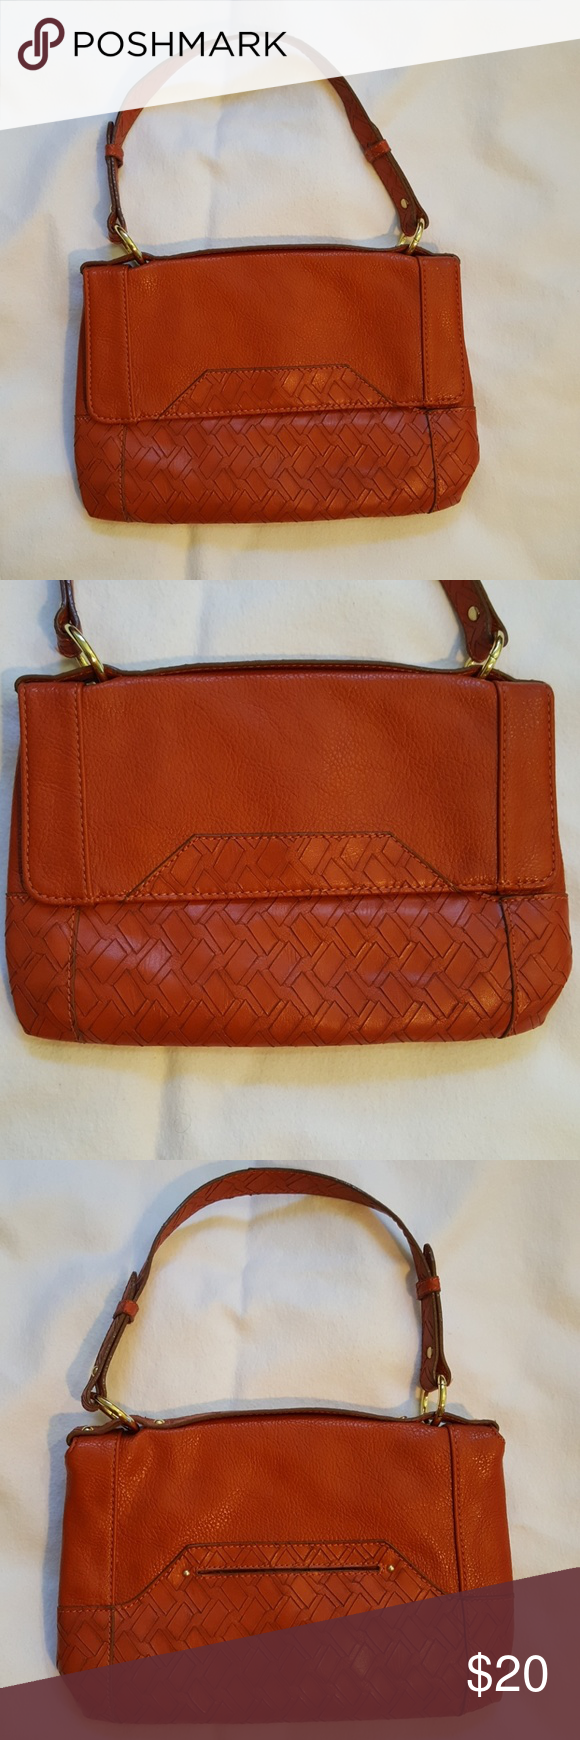 Nwt Vintage Burnt Orange Relic Crossbody Purse This Is A Nwot From Includes Detachable Strap Roximately 12 Wide 7 5 Tall